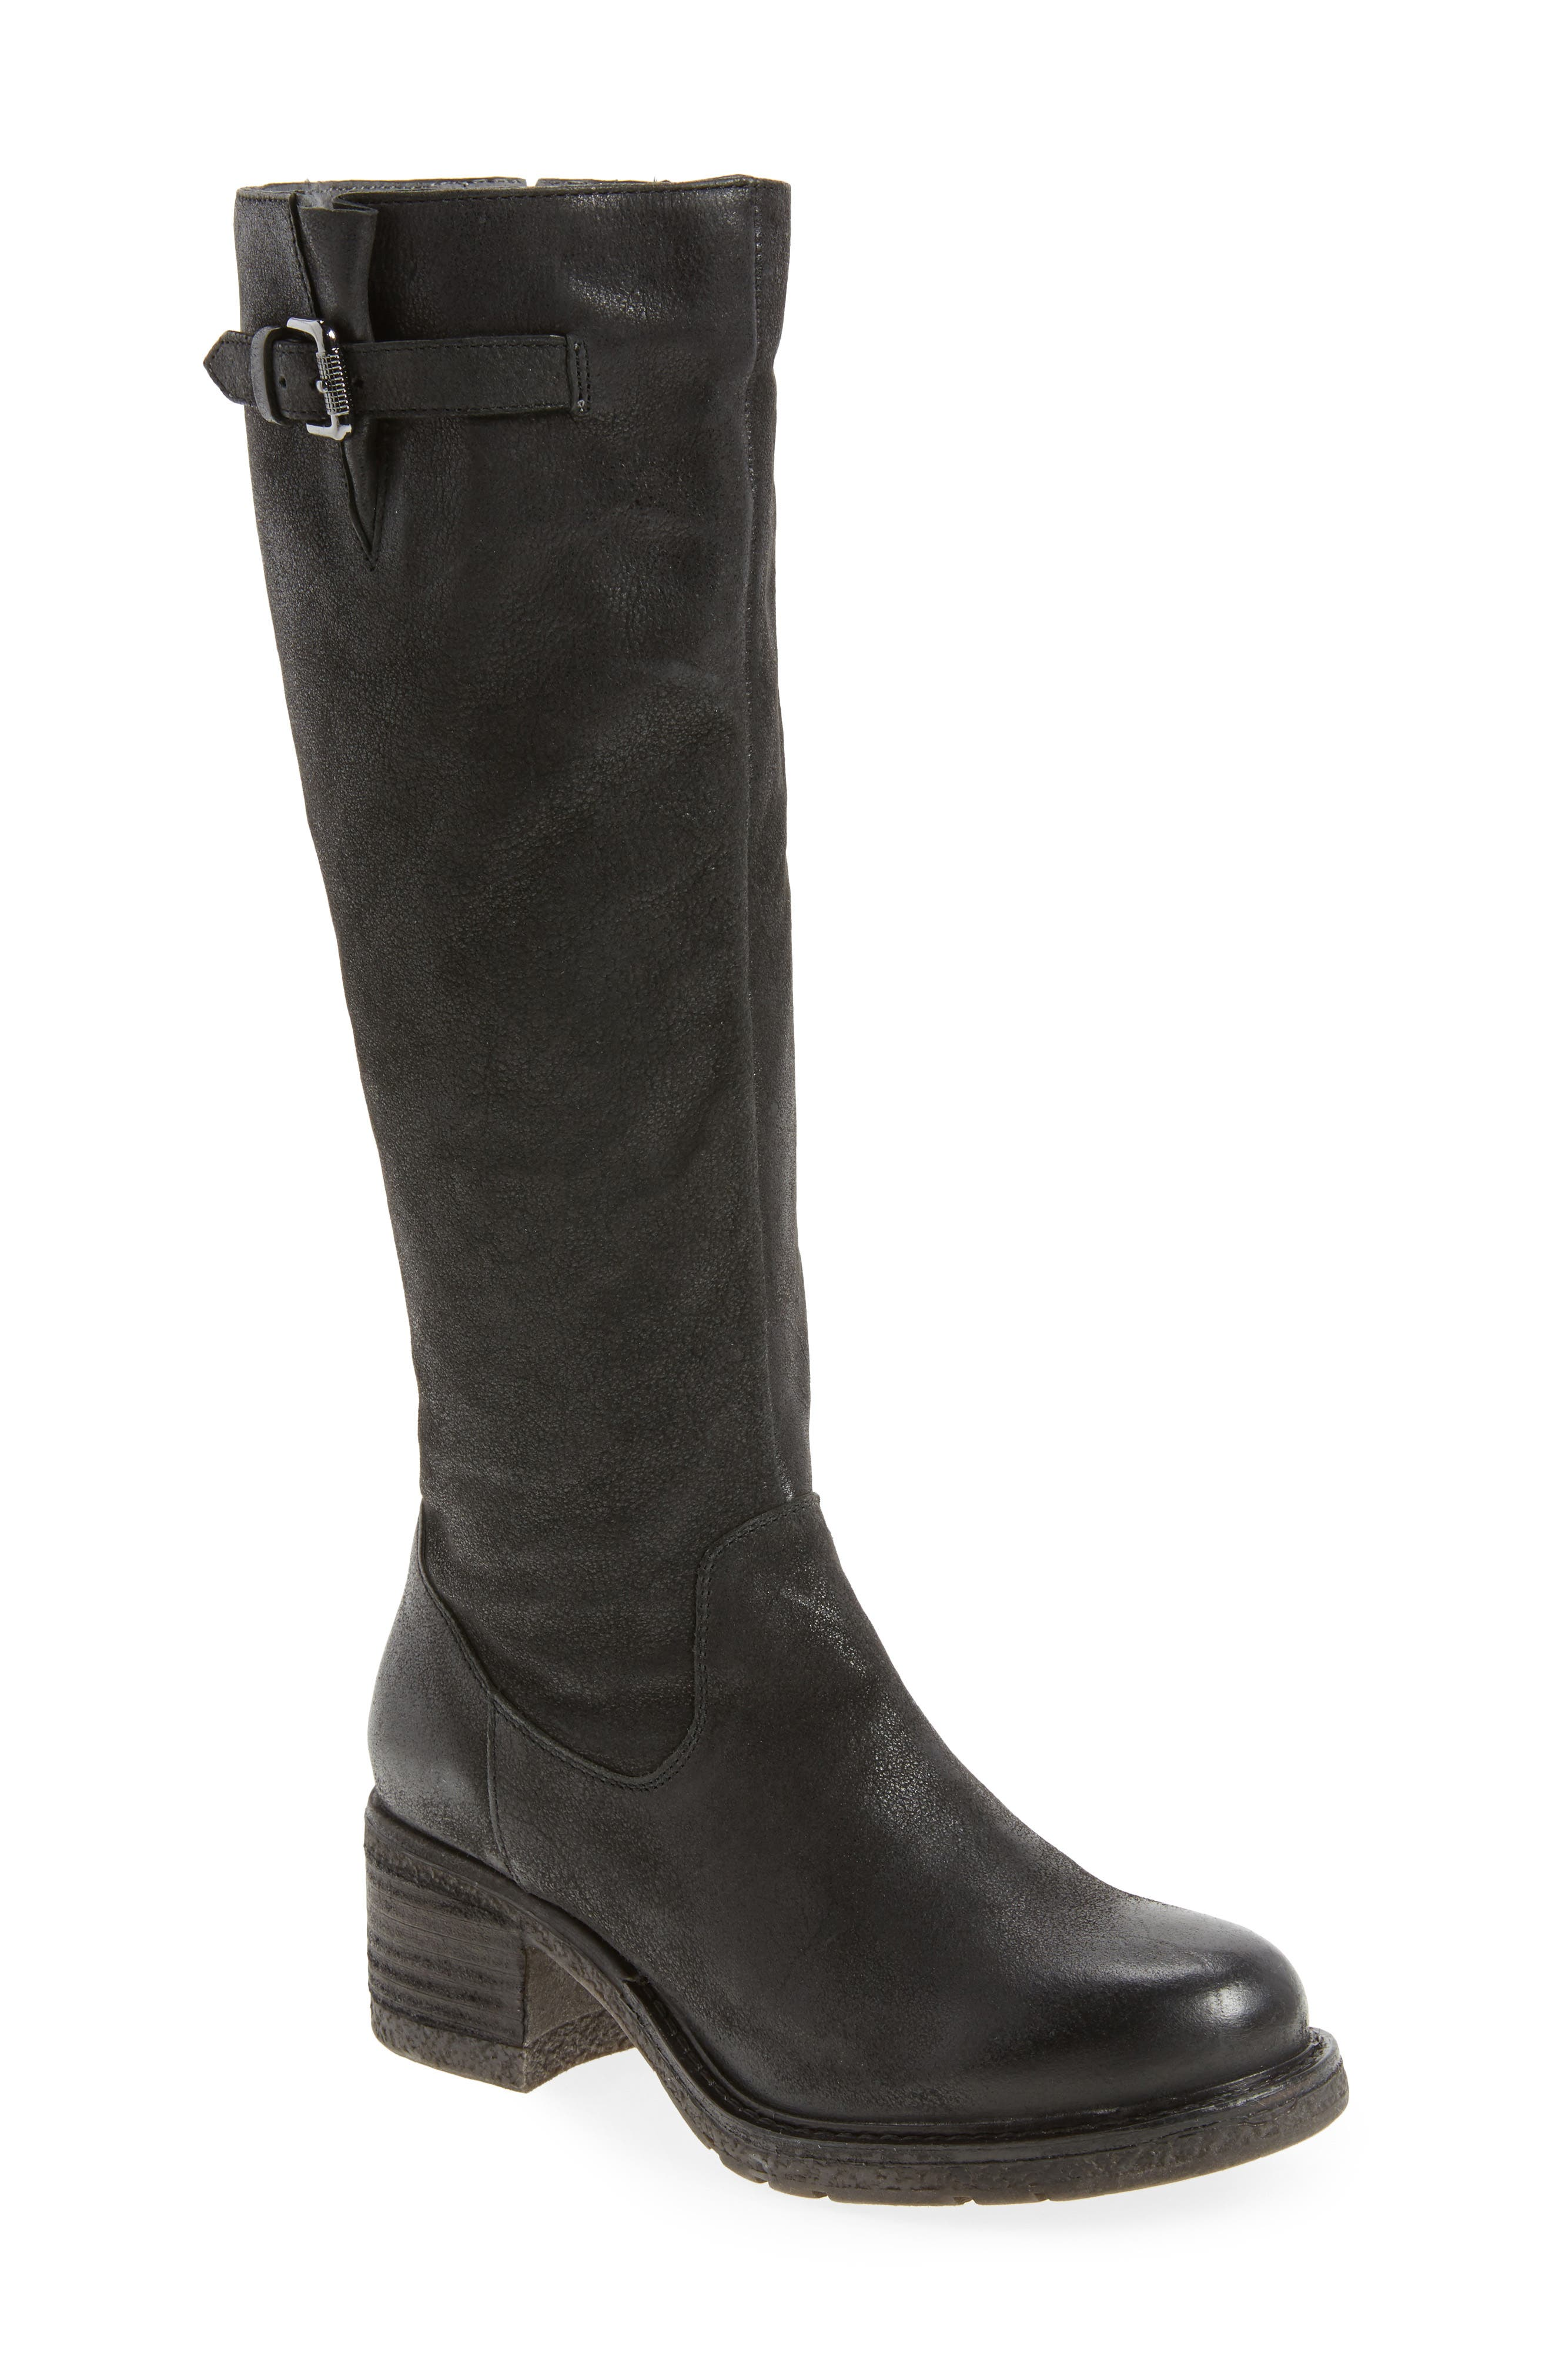 Main Image - Seychelles Exit Tall Boot (Women)